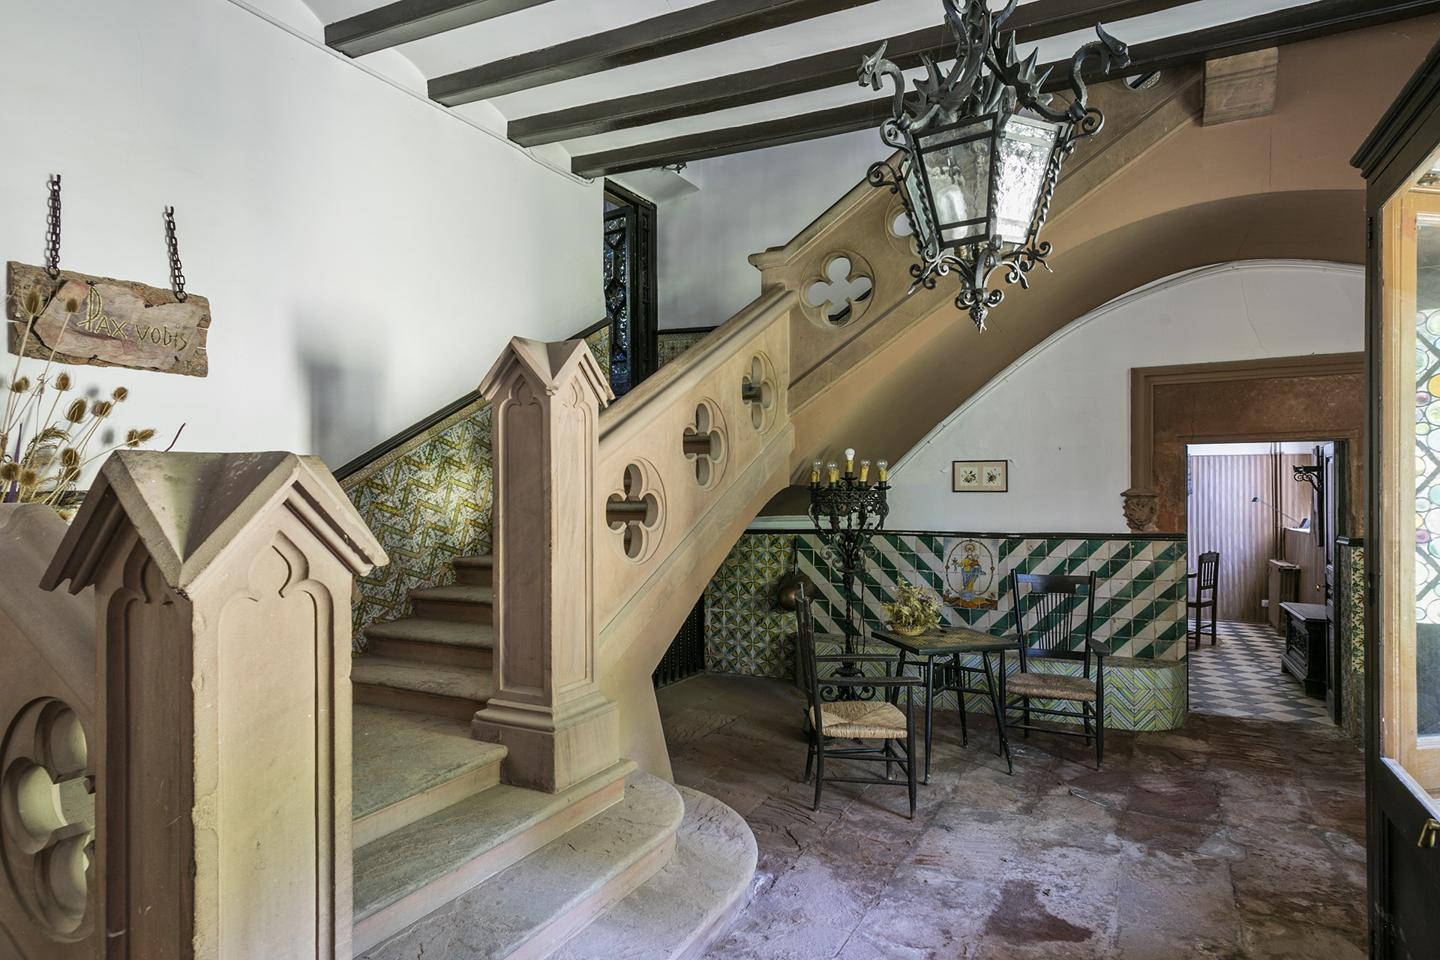 The grand hallway features a carved stone staircase, and an inscribed arch from 1635, while the roof features defensive turrets, which nod to its construction during a chaotic period of history